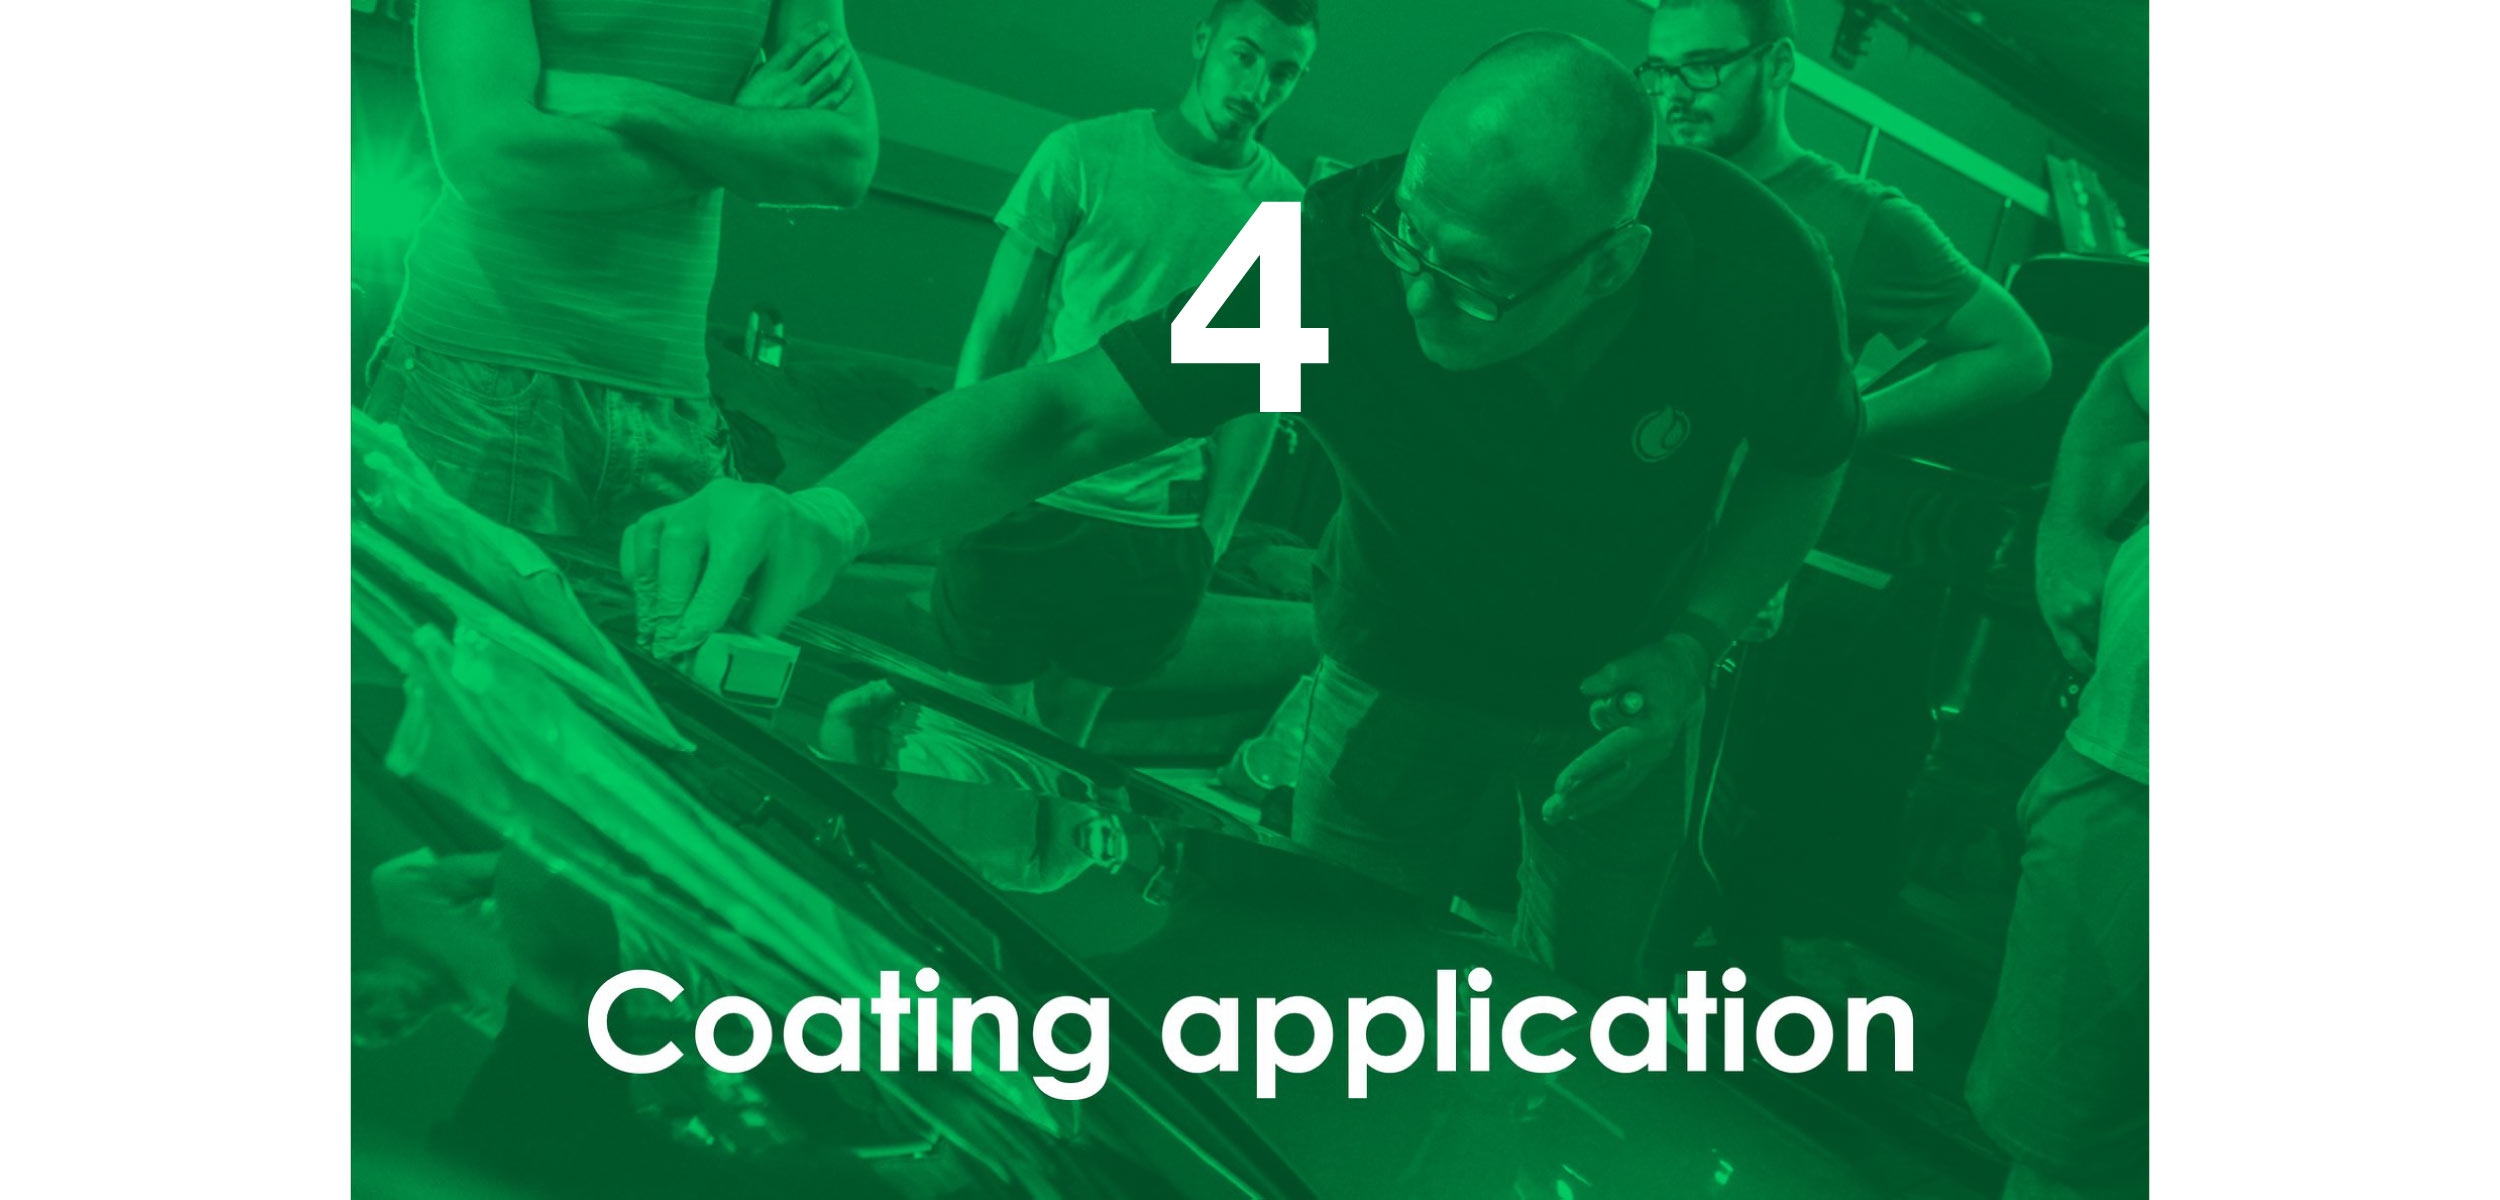 learn-the-right-coating-application-way-when-you-join-igl-coatings-trainign-seminar-car-detail-workshop